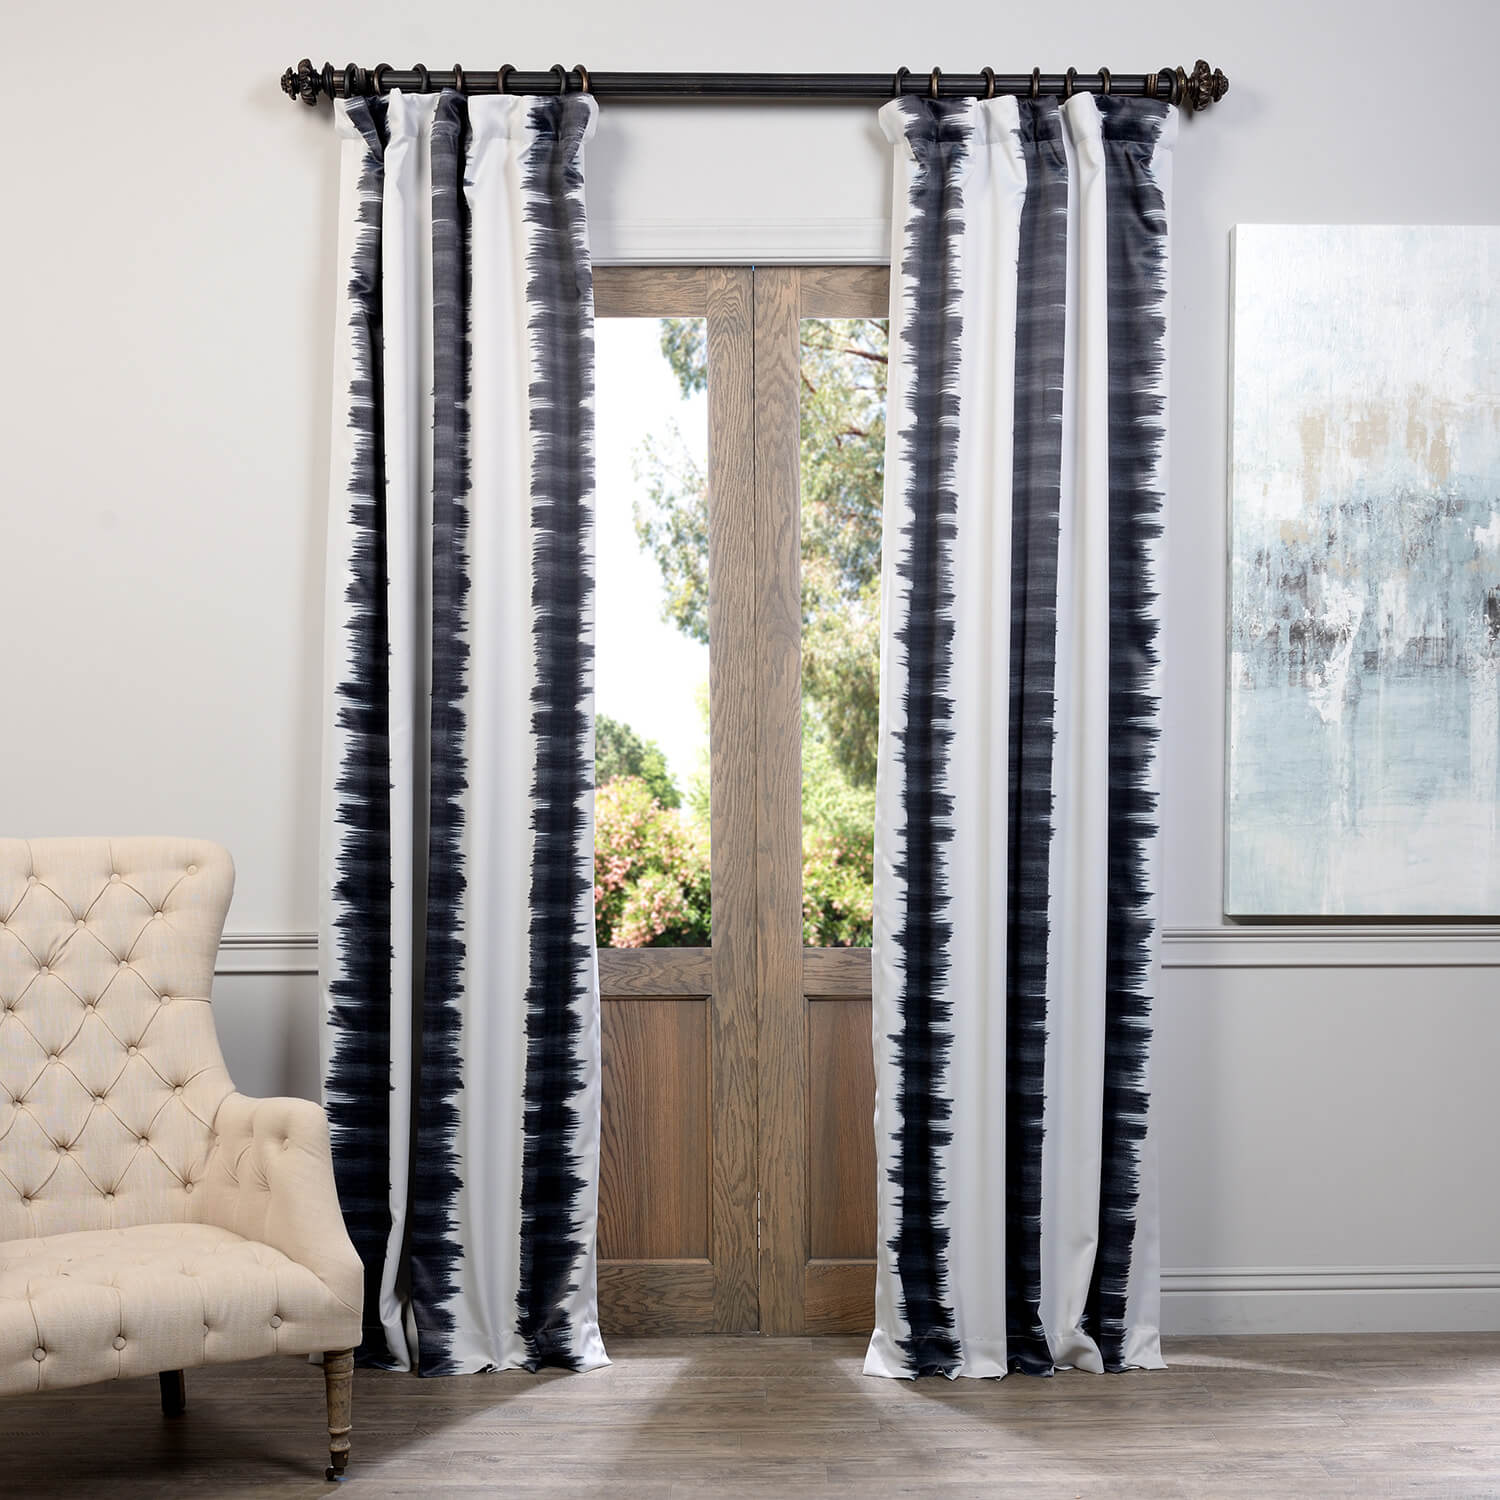 Flambe Black Blackout Curtain